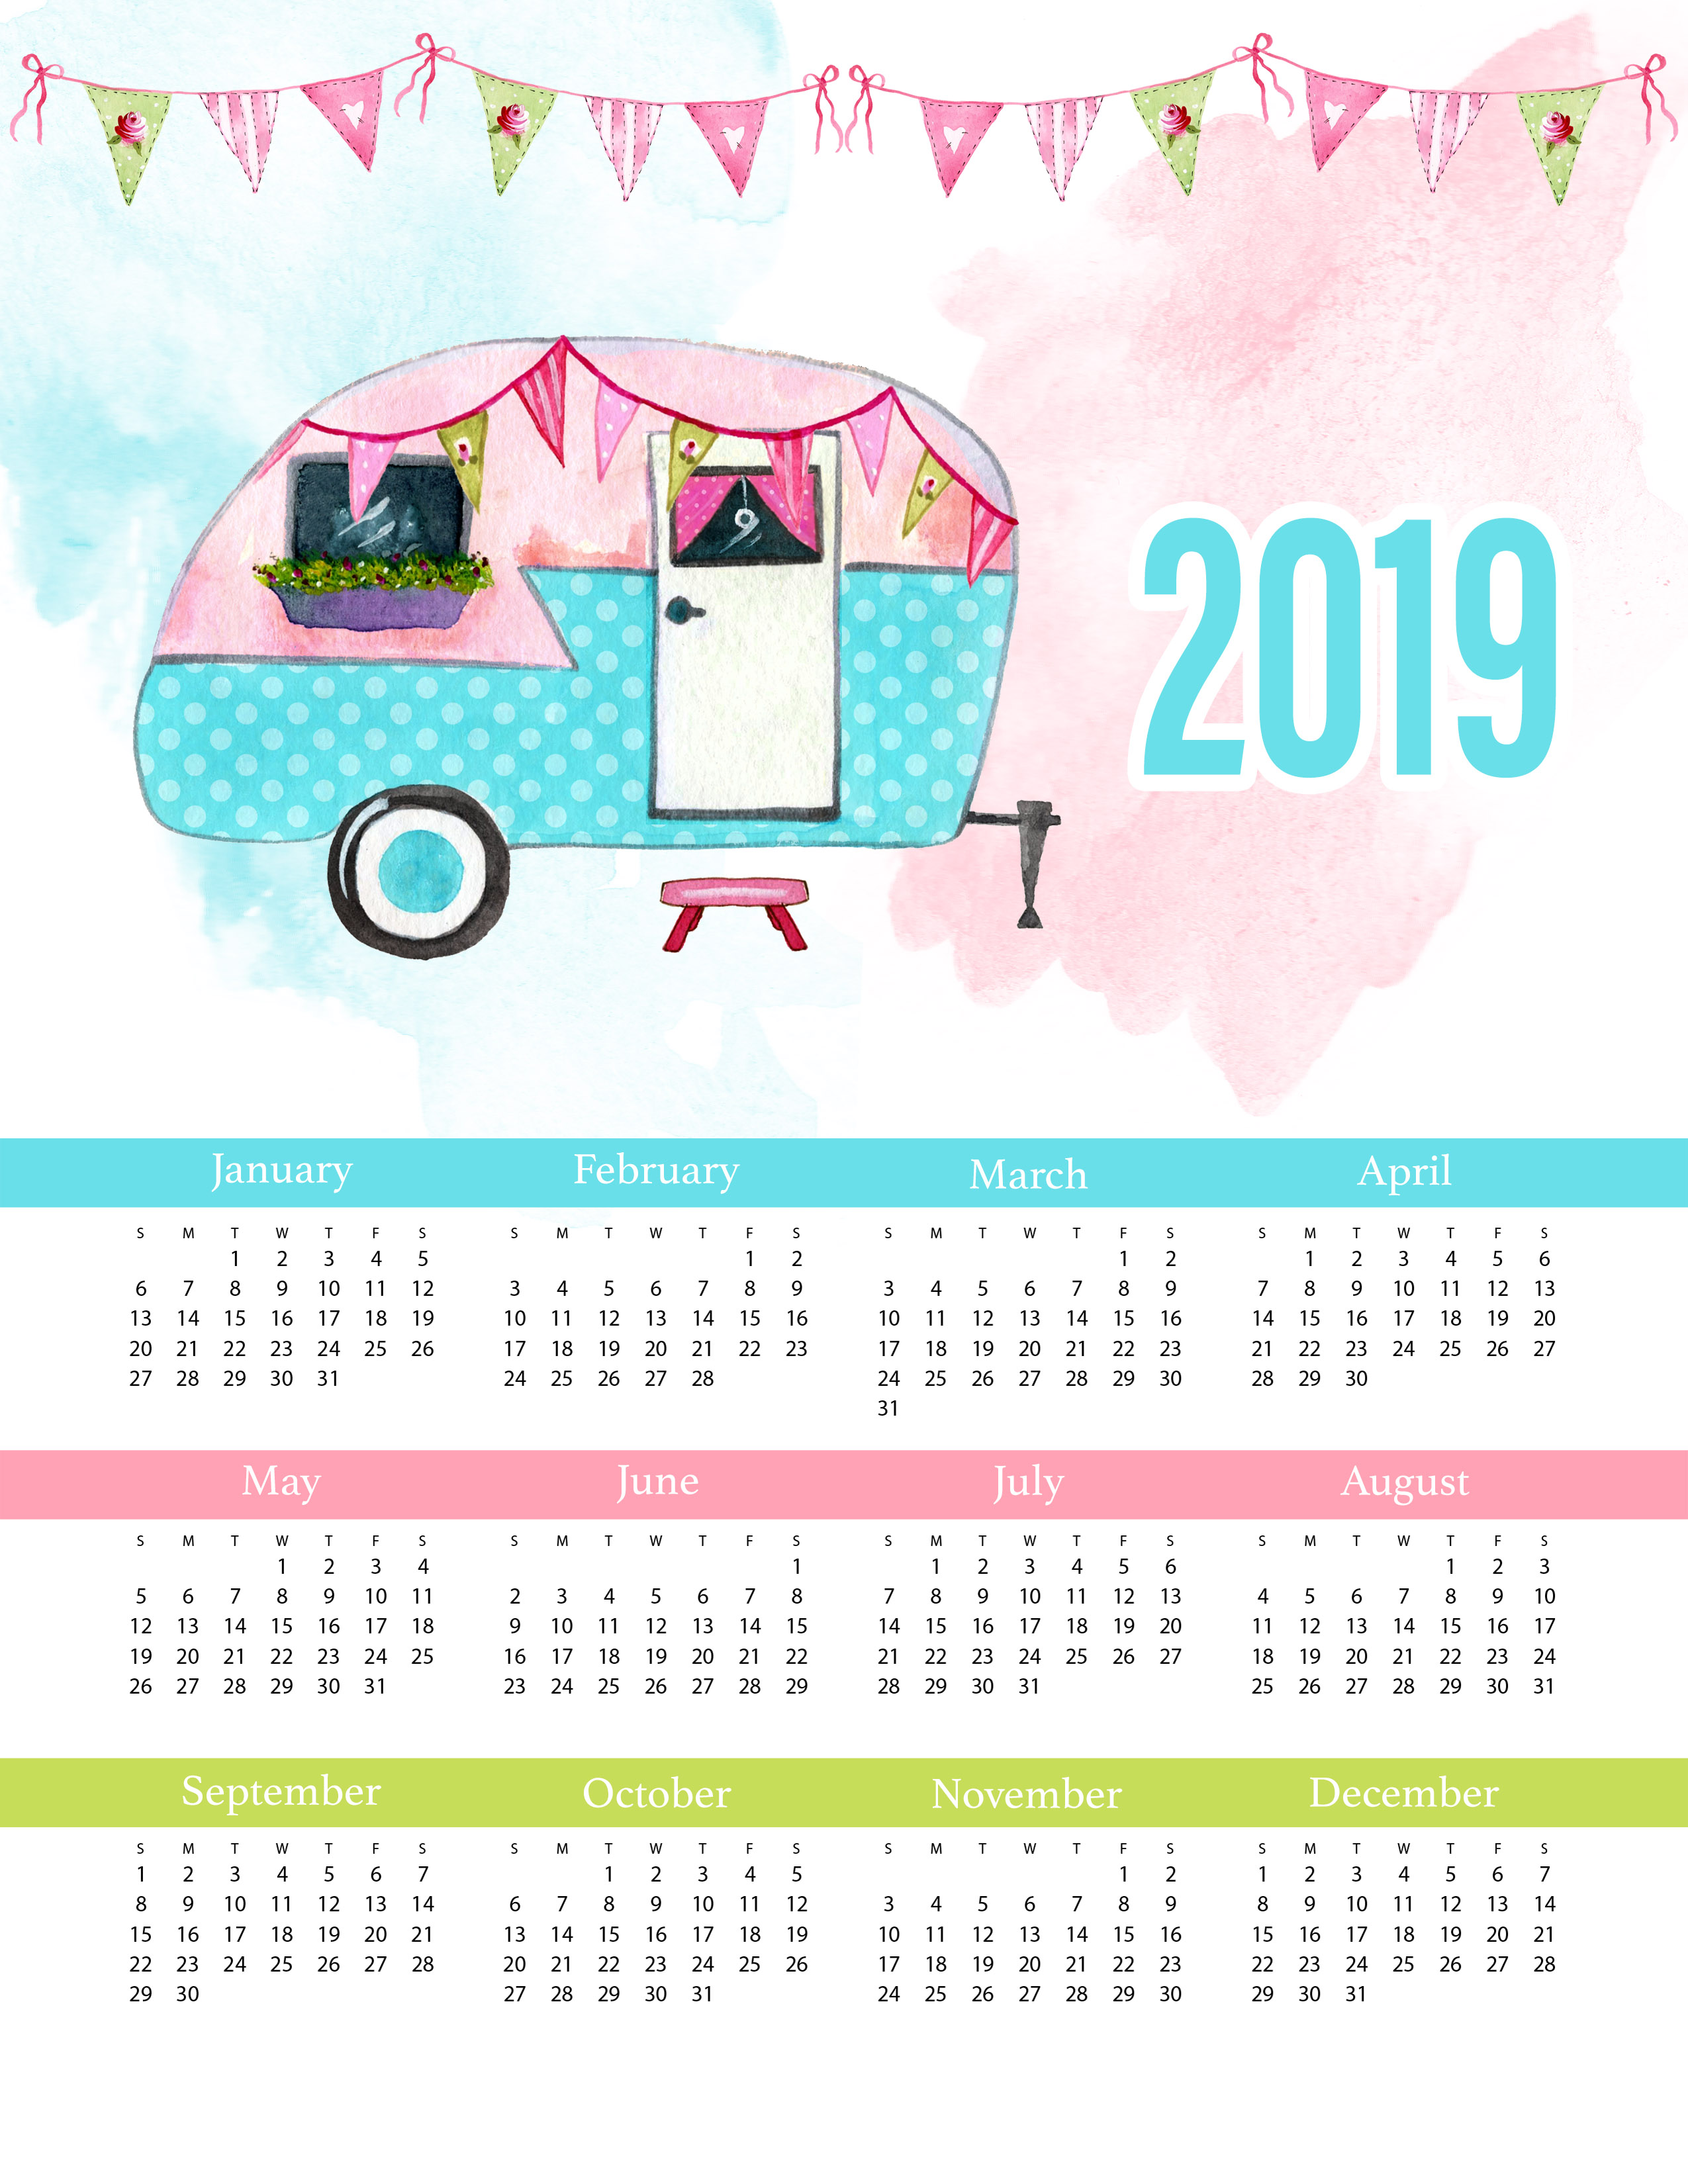 2019 Calendar One Page.Free Printable 2019 Glamping One Page Calendar The Cottage Market